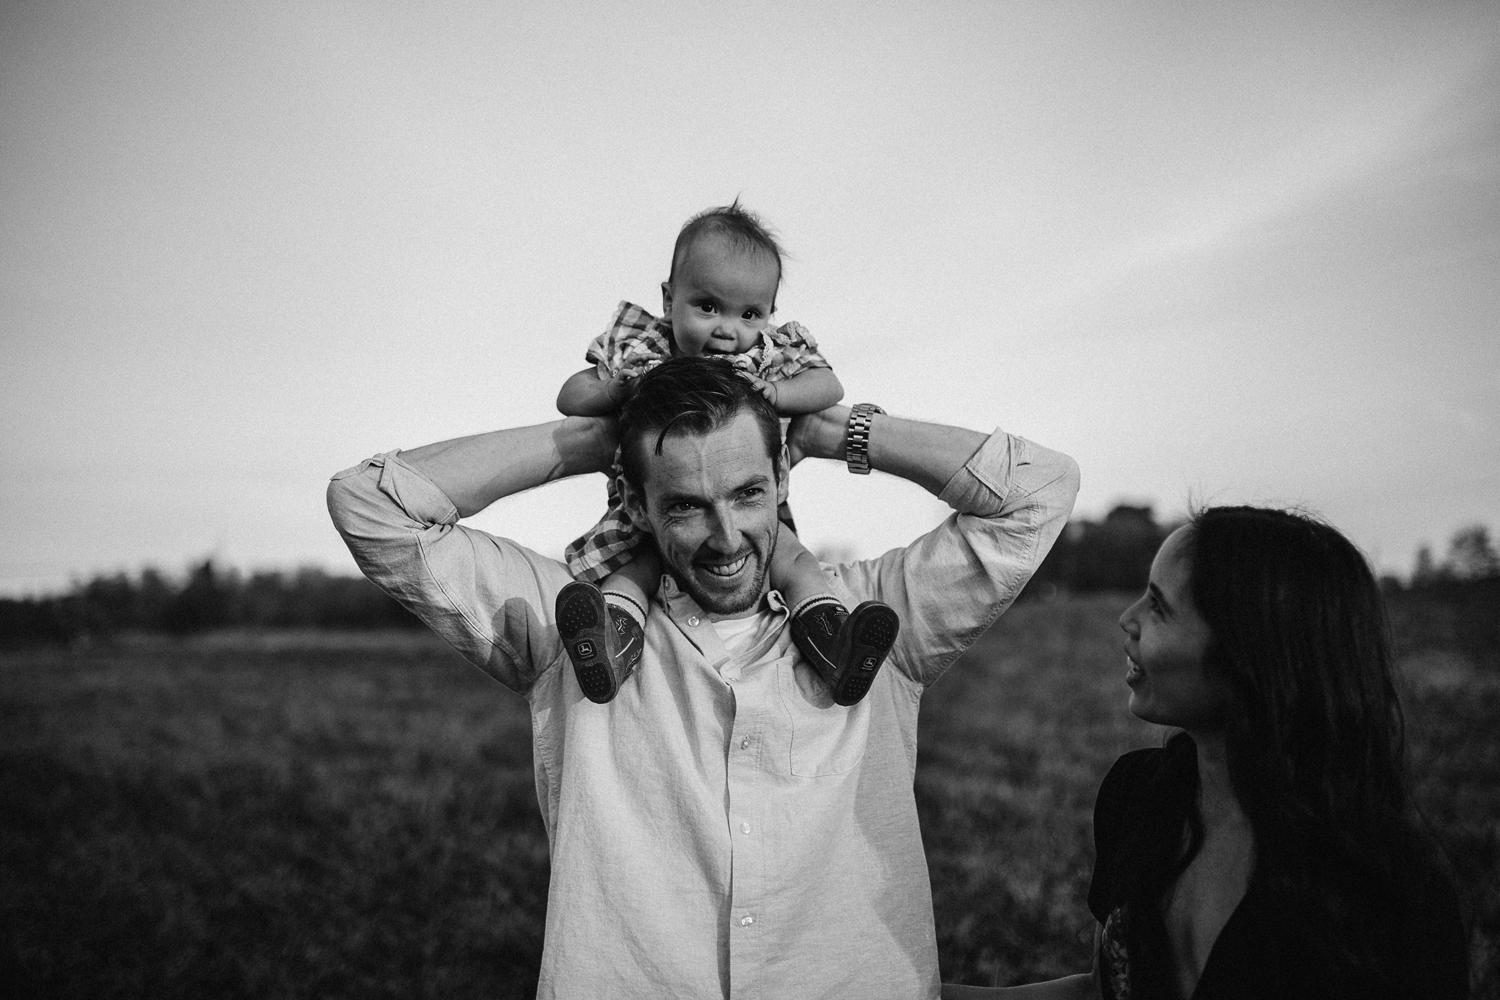 perth ontario family photography - kerry ford-022.jpg